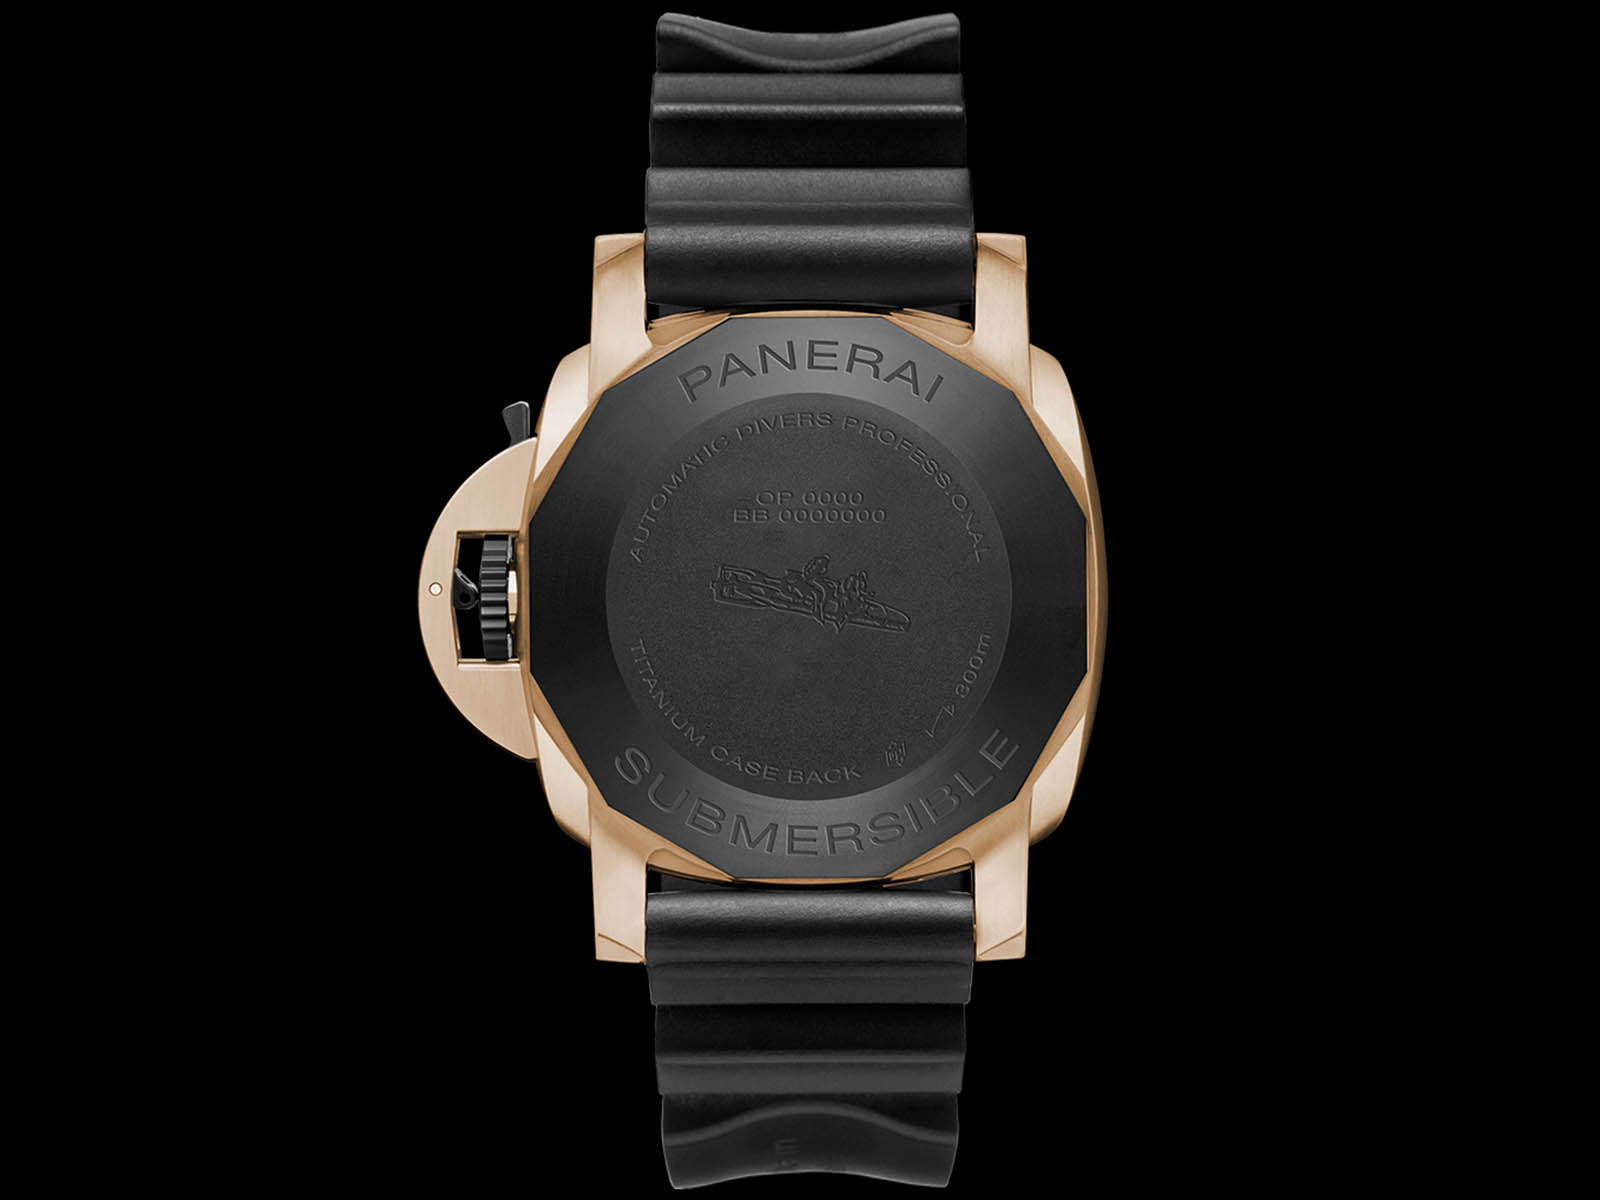 pam01070-panerai-submersible-goldtechtm-44-mm-7.jpg